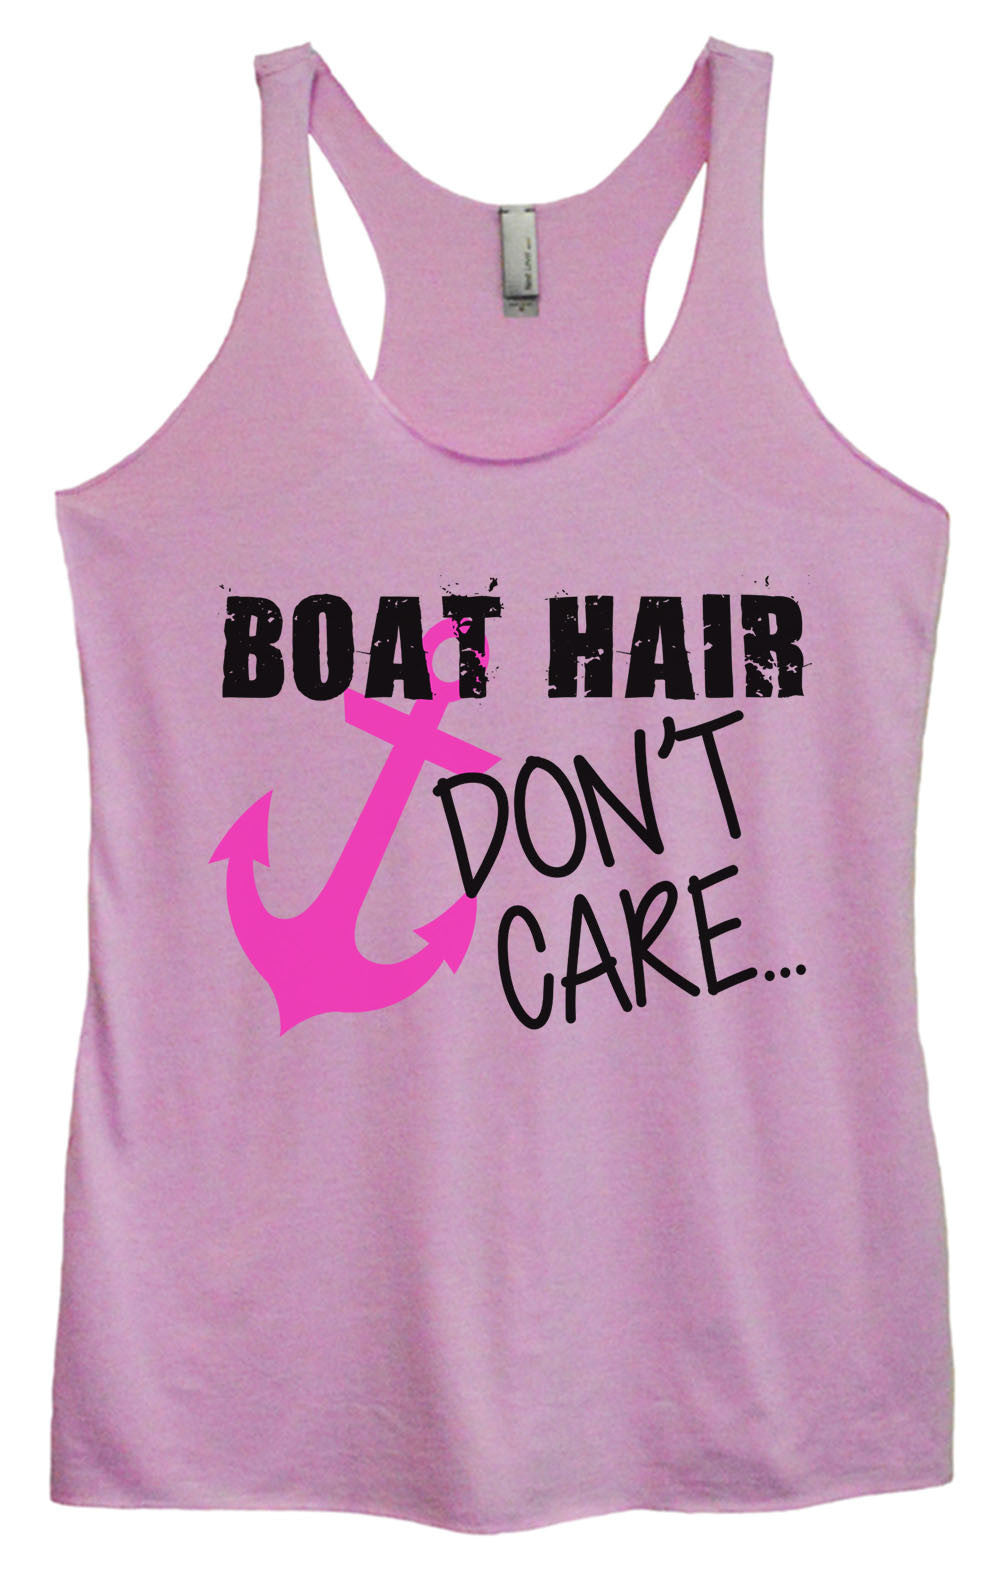 Womens Fashion Triblend Tank Top - Boat Hair Don't Care - Tri-691 - Funny Shirts Tank Tops Burnouts and Triblends  - 3